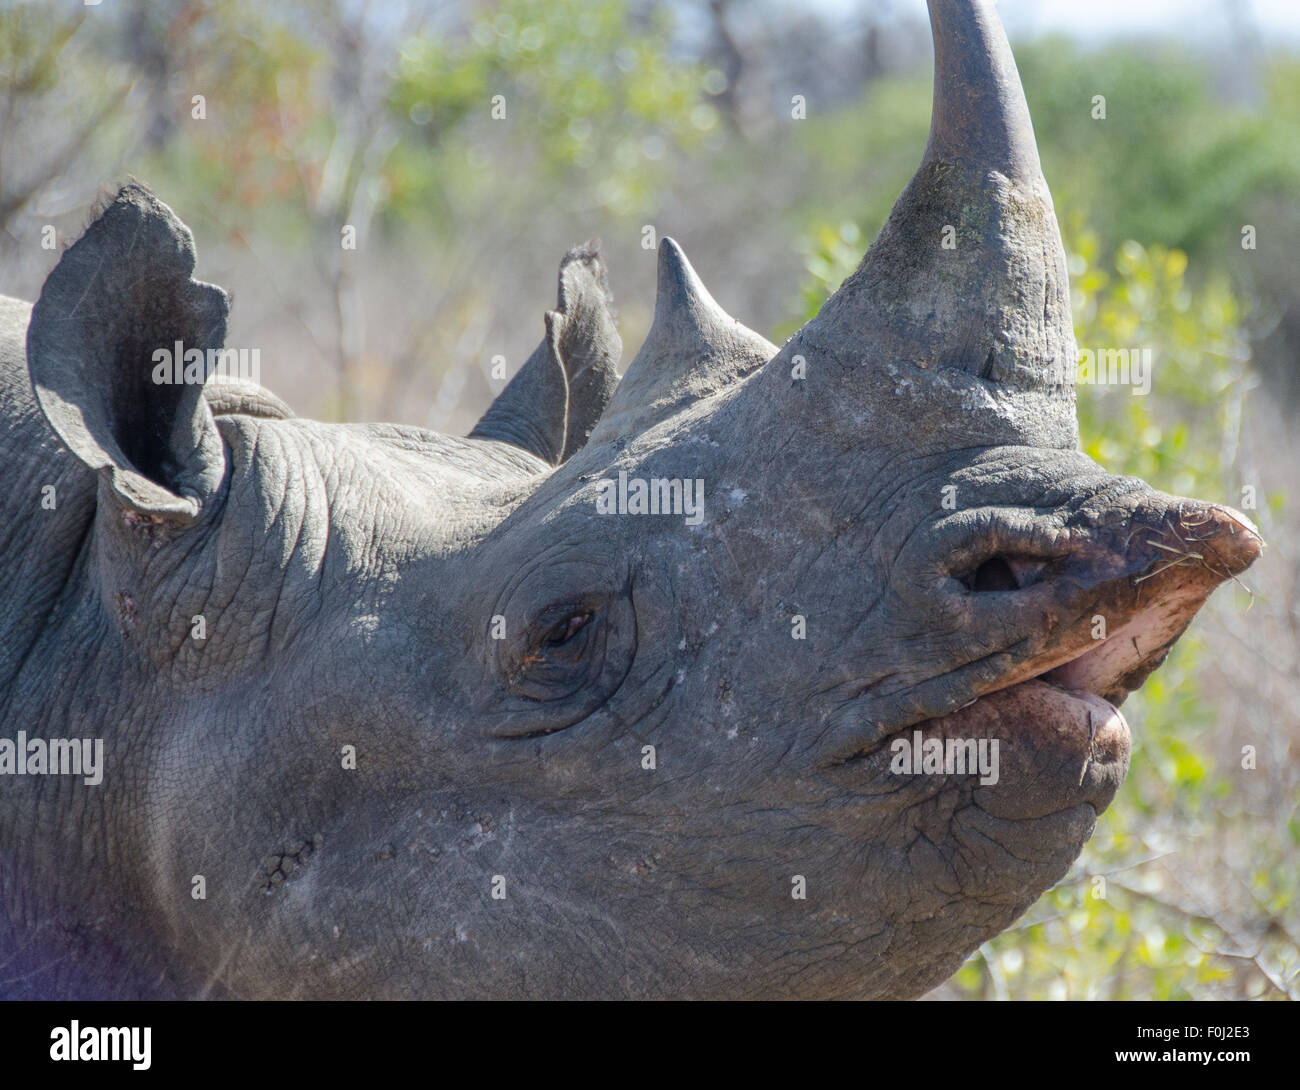 The elusive and critically endangered black rhinoceros roams through the Mkhaya Game Reserve in Swaziland. - Stock Image